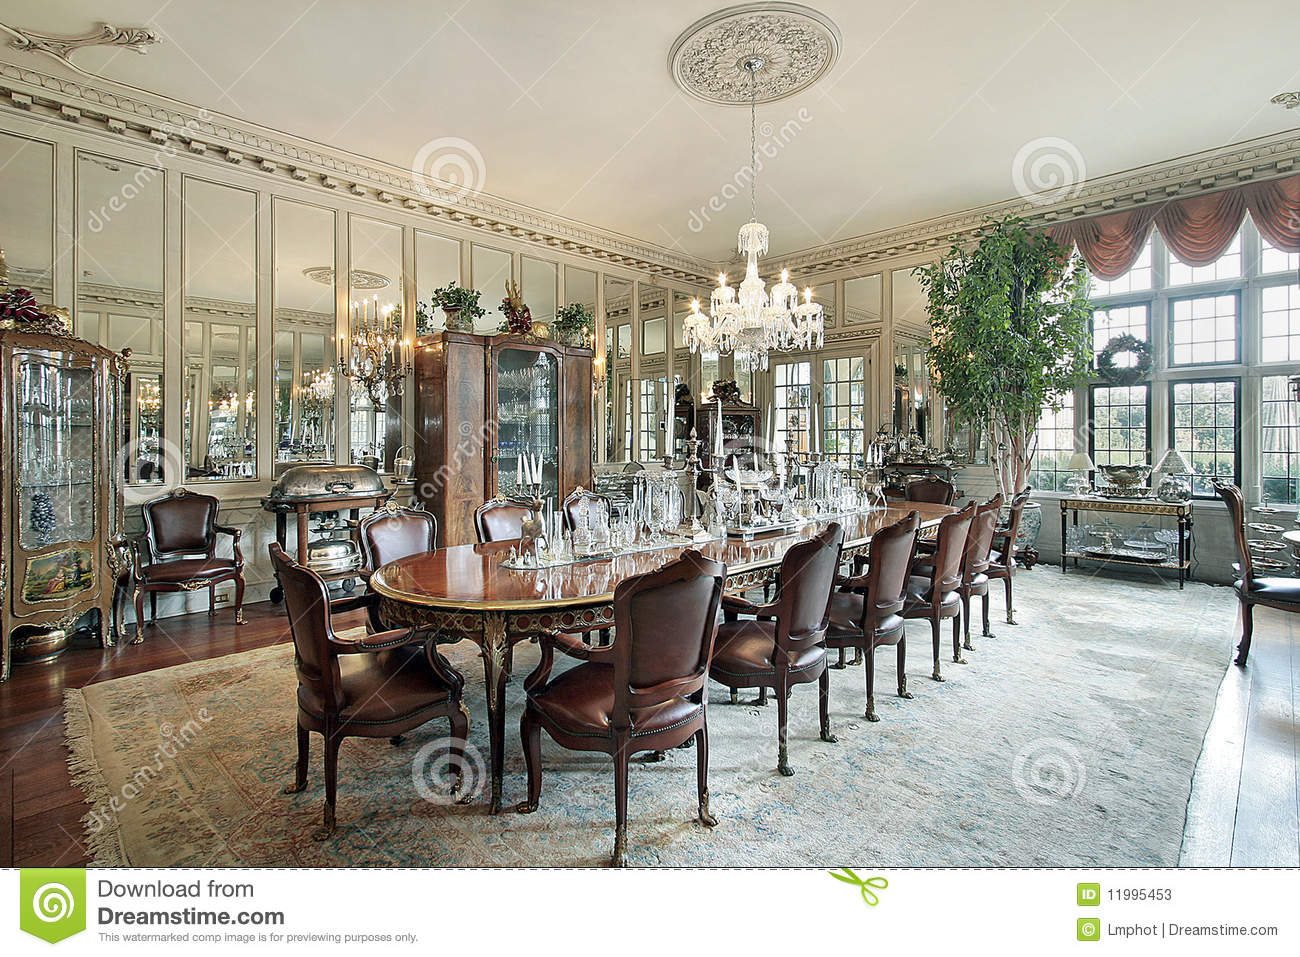 formal dining room with wall mirrors stock photos - image: 11995453